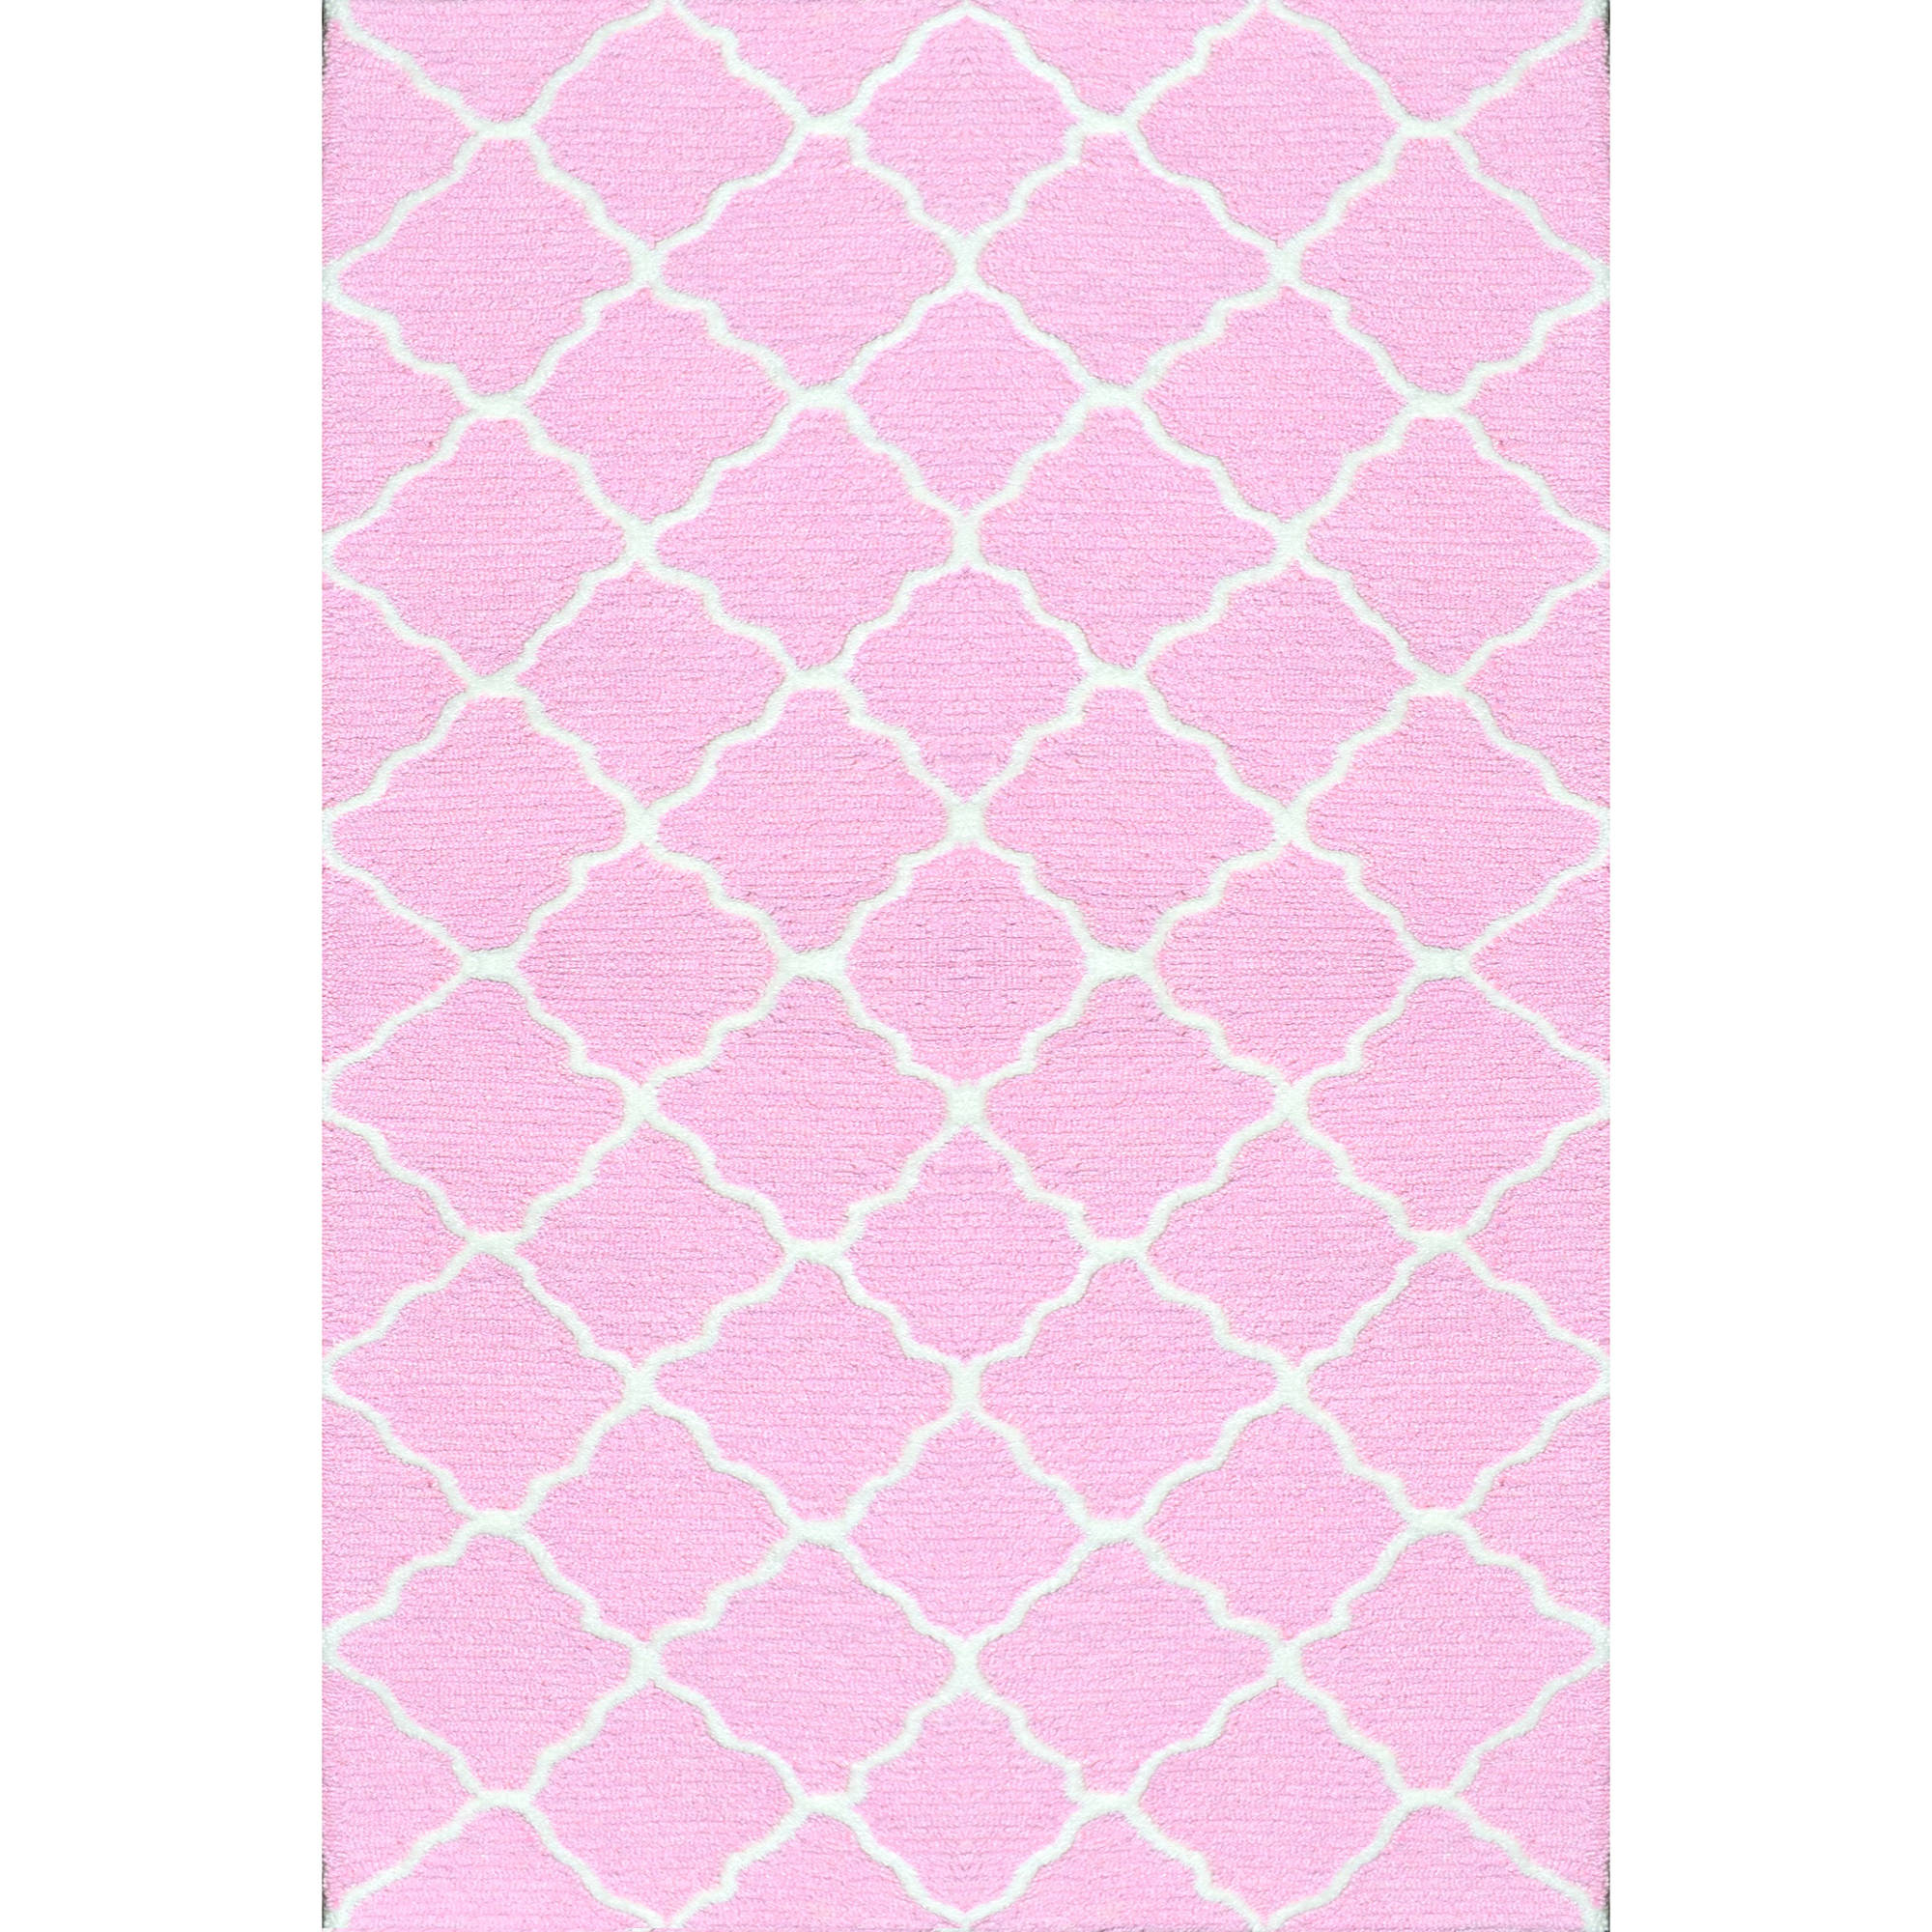 "The Rug Market Lattice Pink 4.7"" x 7.7"" Area Rug by The Rug Market"